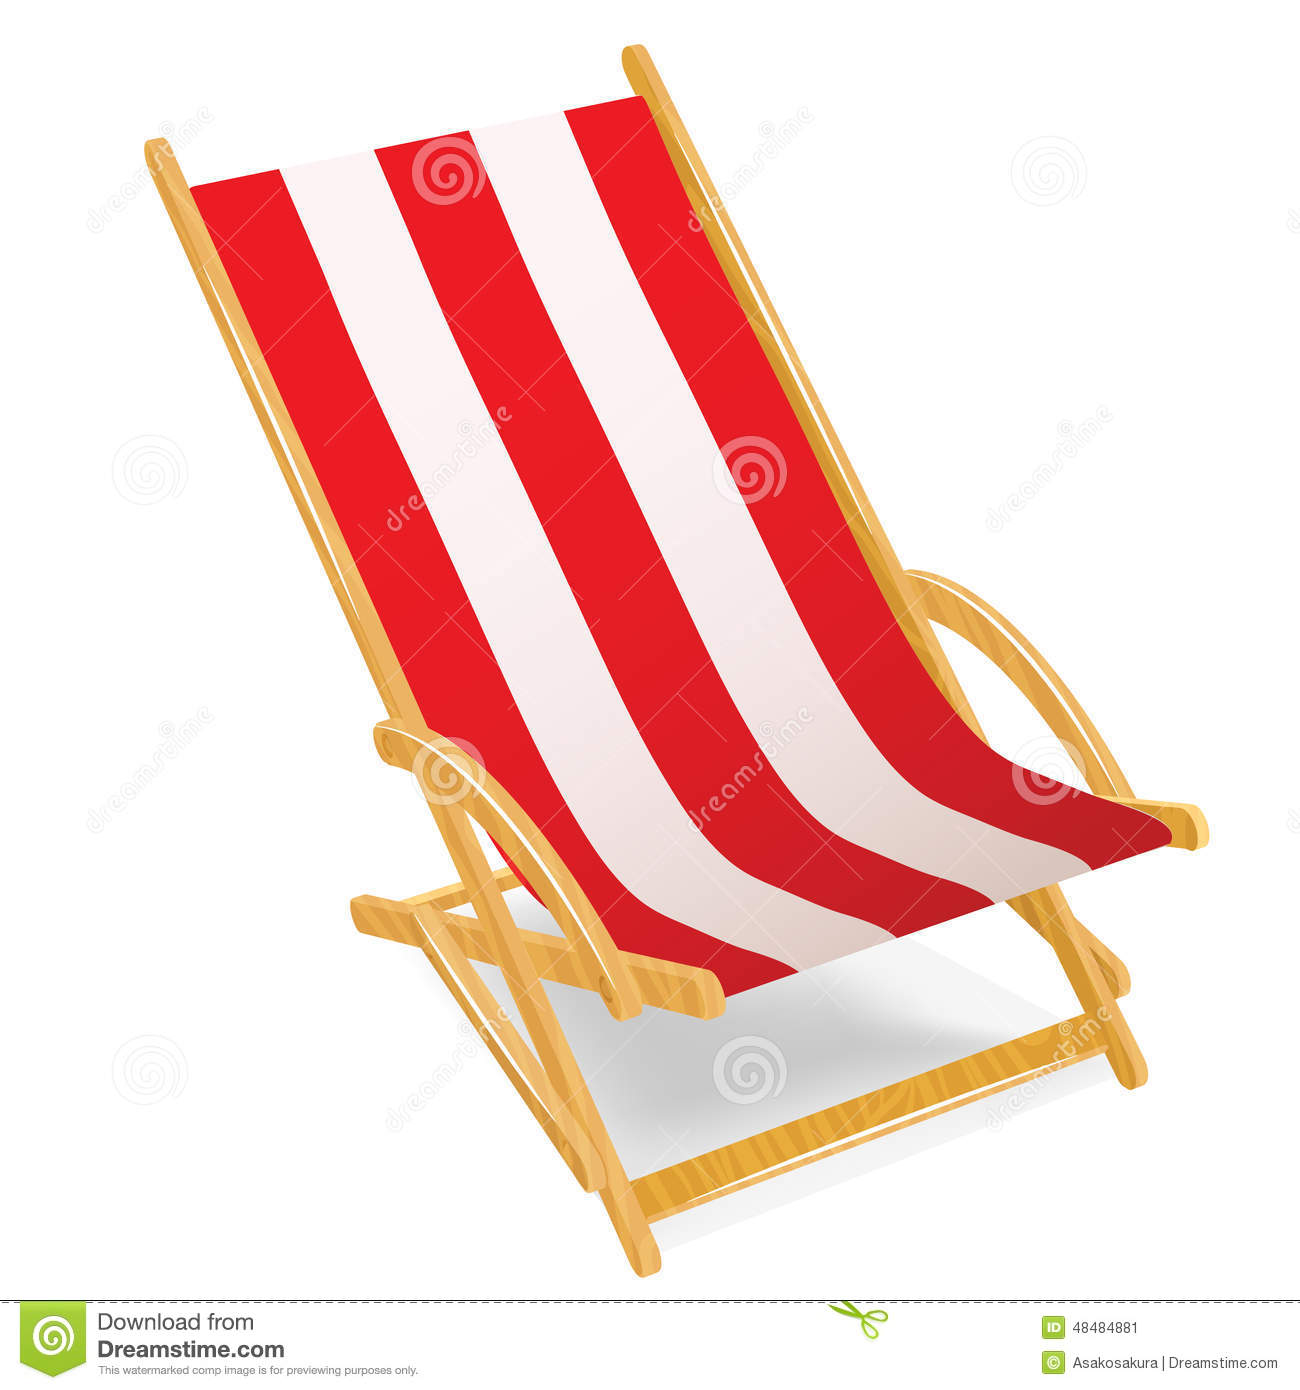 Wooden beach chaise longue isolated on white stock vector for Chaises longues de plage